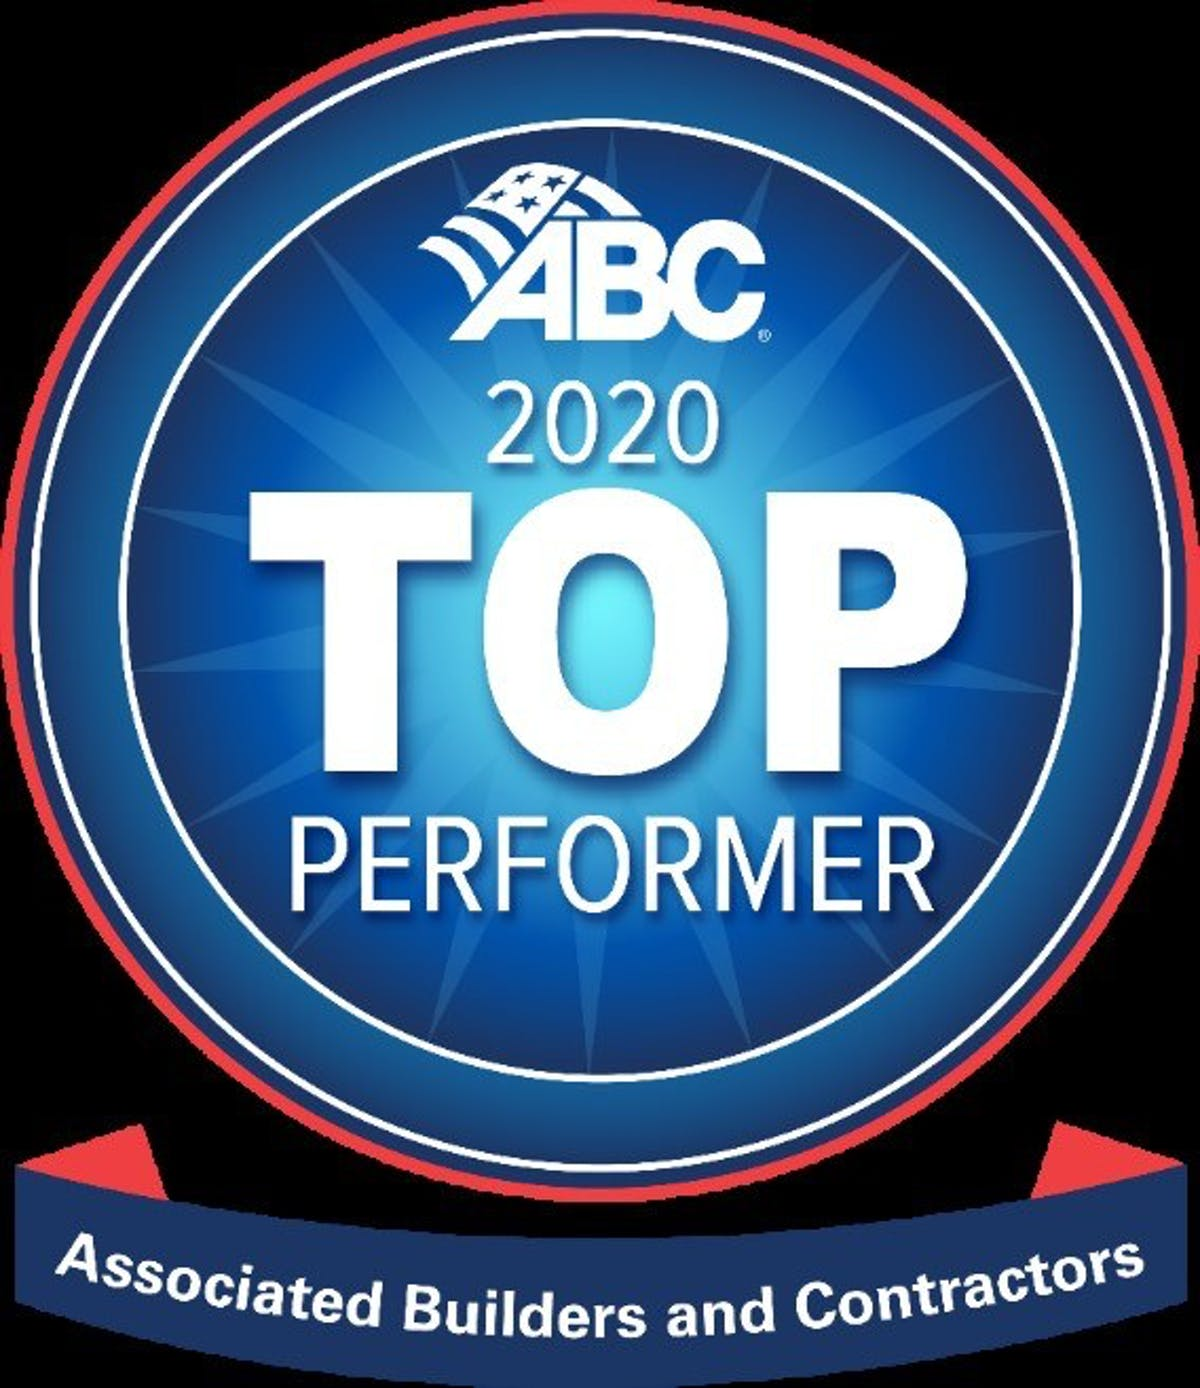 MMR Named ABC's Top-Performing Electrical Contractor, Ranks Third on U.S. Commercial and Industrial Construction Firms Contractors' List